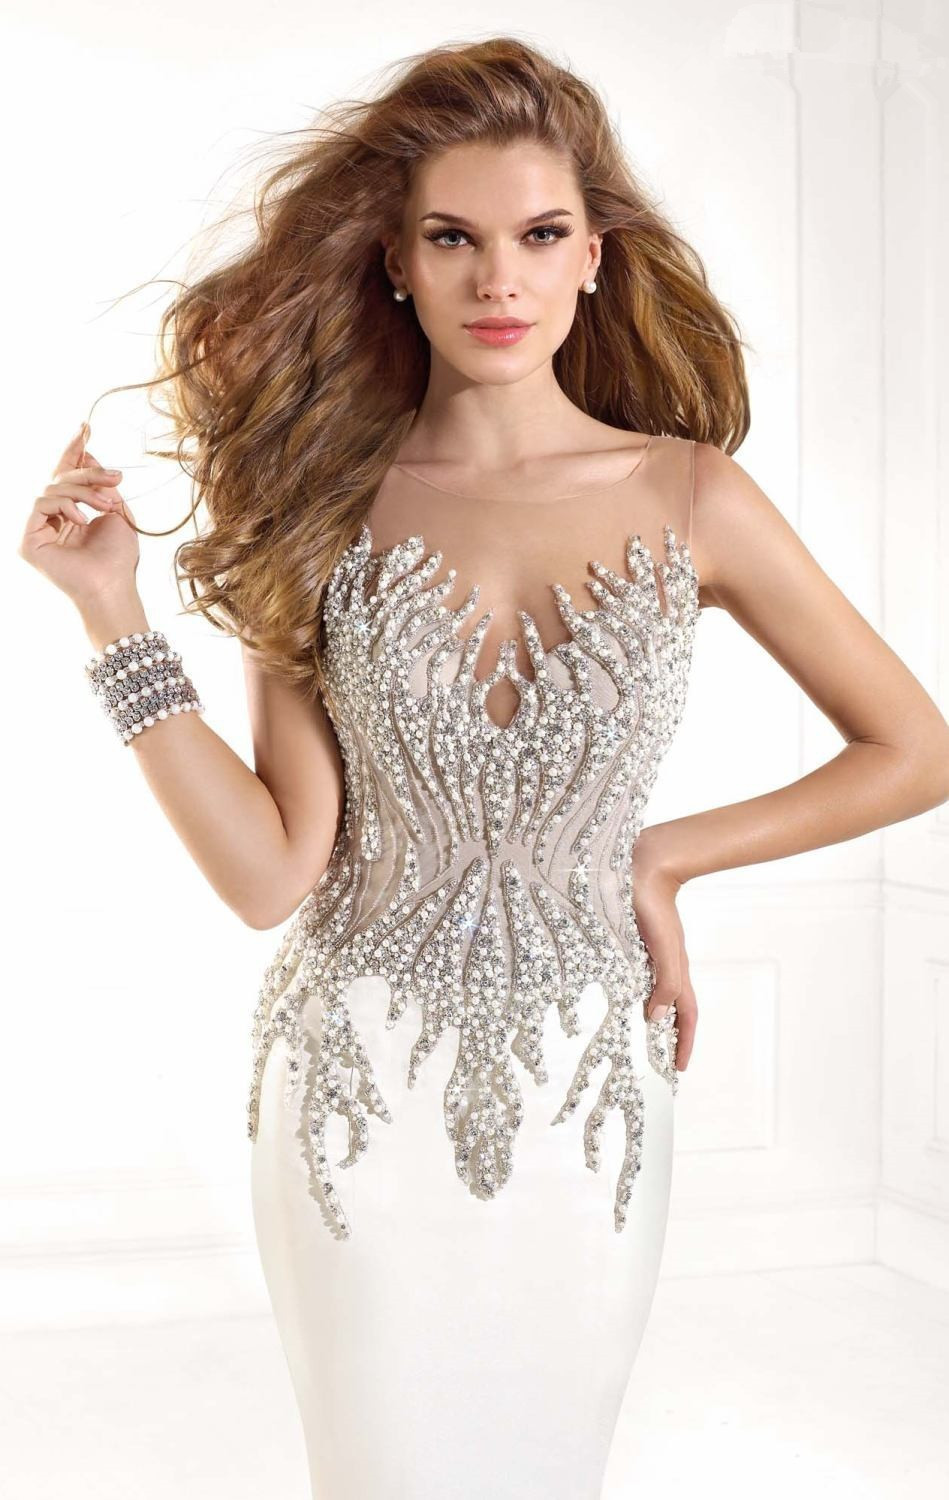 Fast Send White Mermaid Prom Dress Long Prom Dresses 2015 With Crystal Beading Sexy Women Formal Gowns In Stock